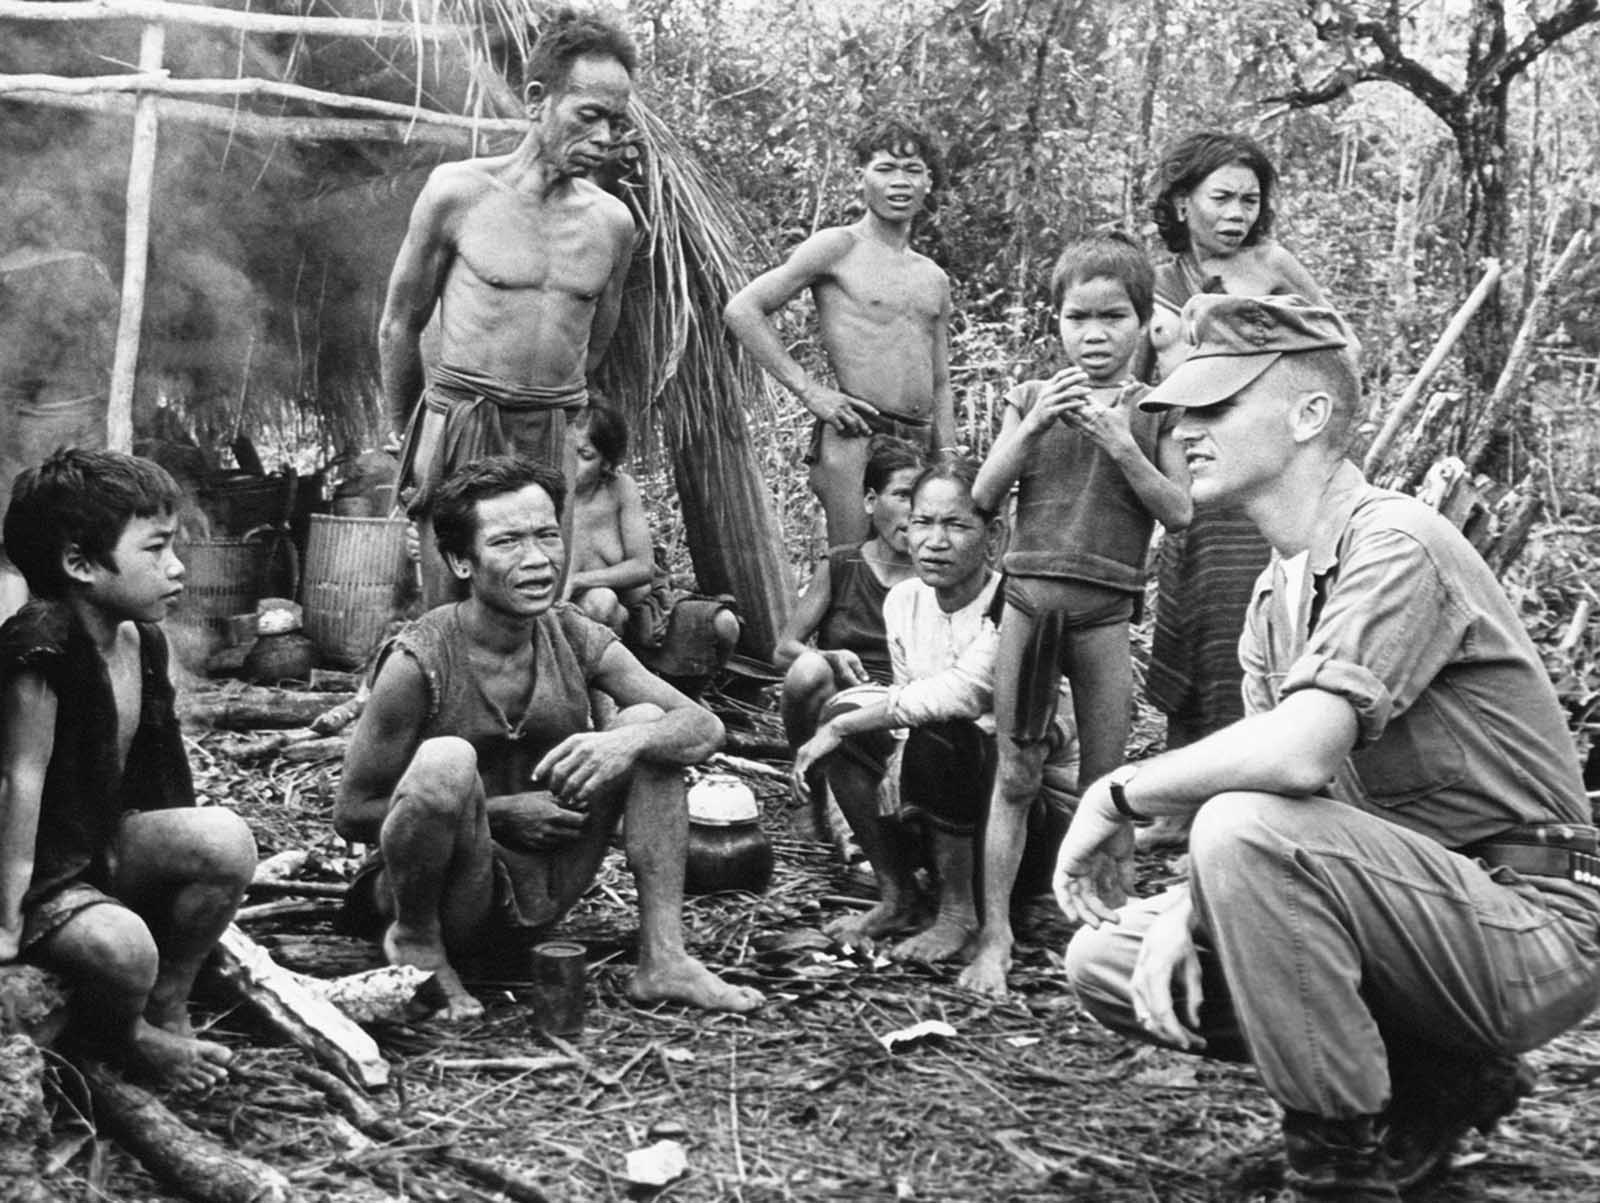 An American officer serving with the South Vietnam forces poses with group of Montagnards in front of one of their provisionary huts in a military camp in central Vietnam on November 17, 1962. They were brought in by government troops from a village where they were used as labor force by communist Viet Cong forces. The Montagnards, dark-skinned tribesmen numbering about 700,000, live in the highlands of central Vietnam. The government was trying to win their alliance in its war with the Viet Cong.